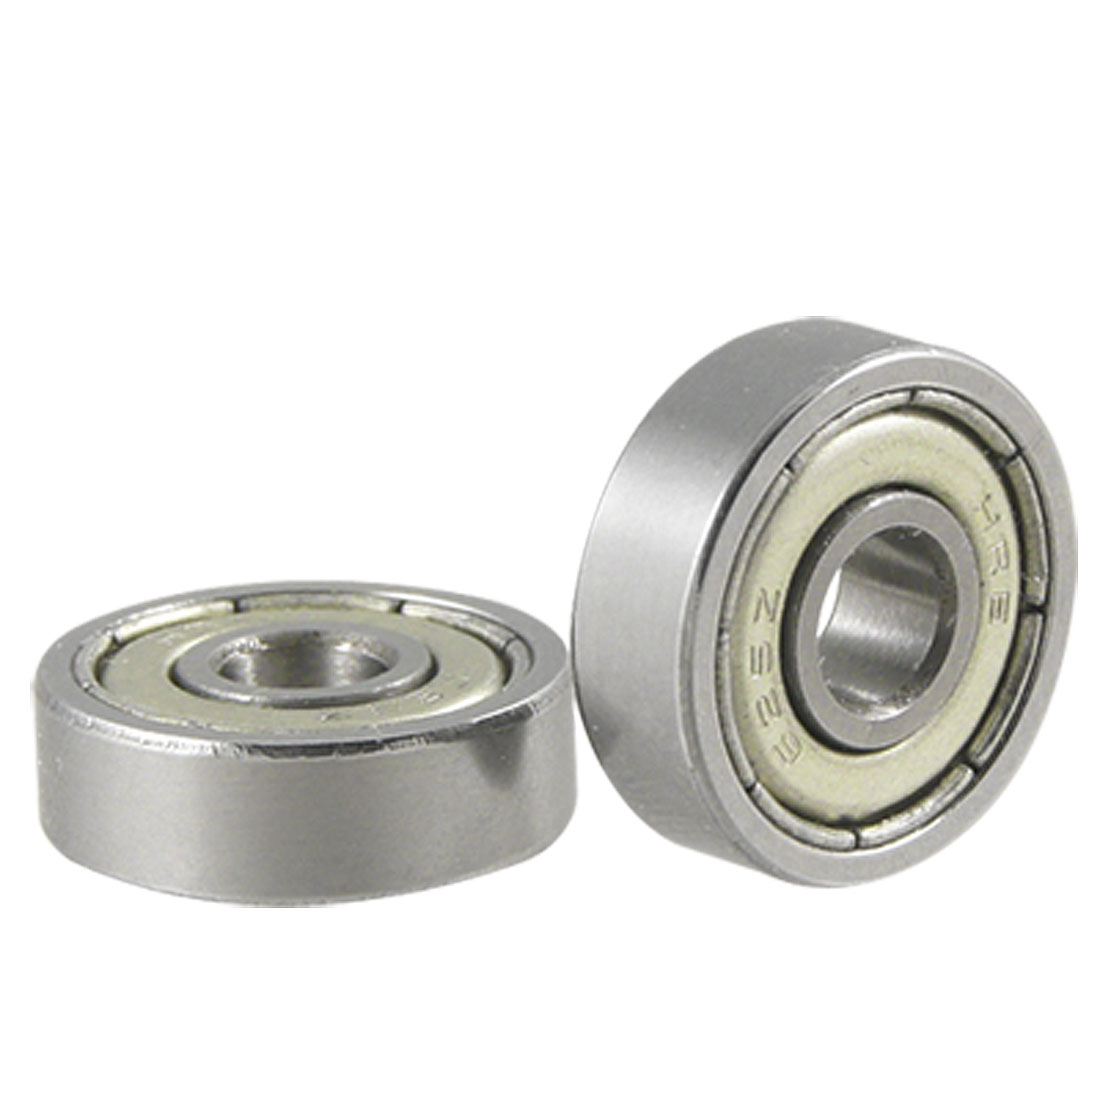 2 Pcs 625Z Miniature Single Shielded Deep Groove Ball Bearings